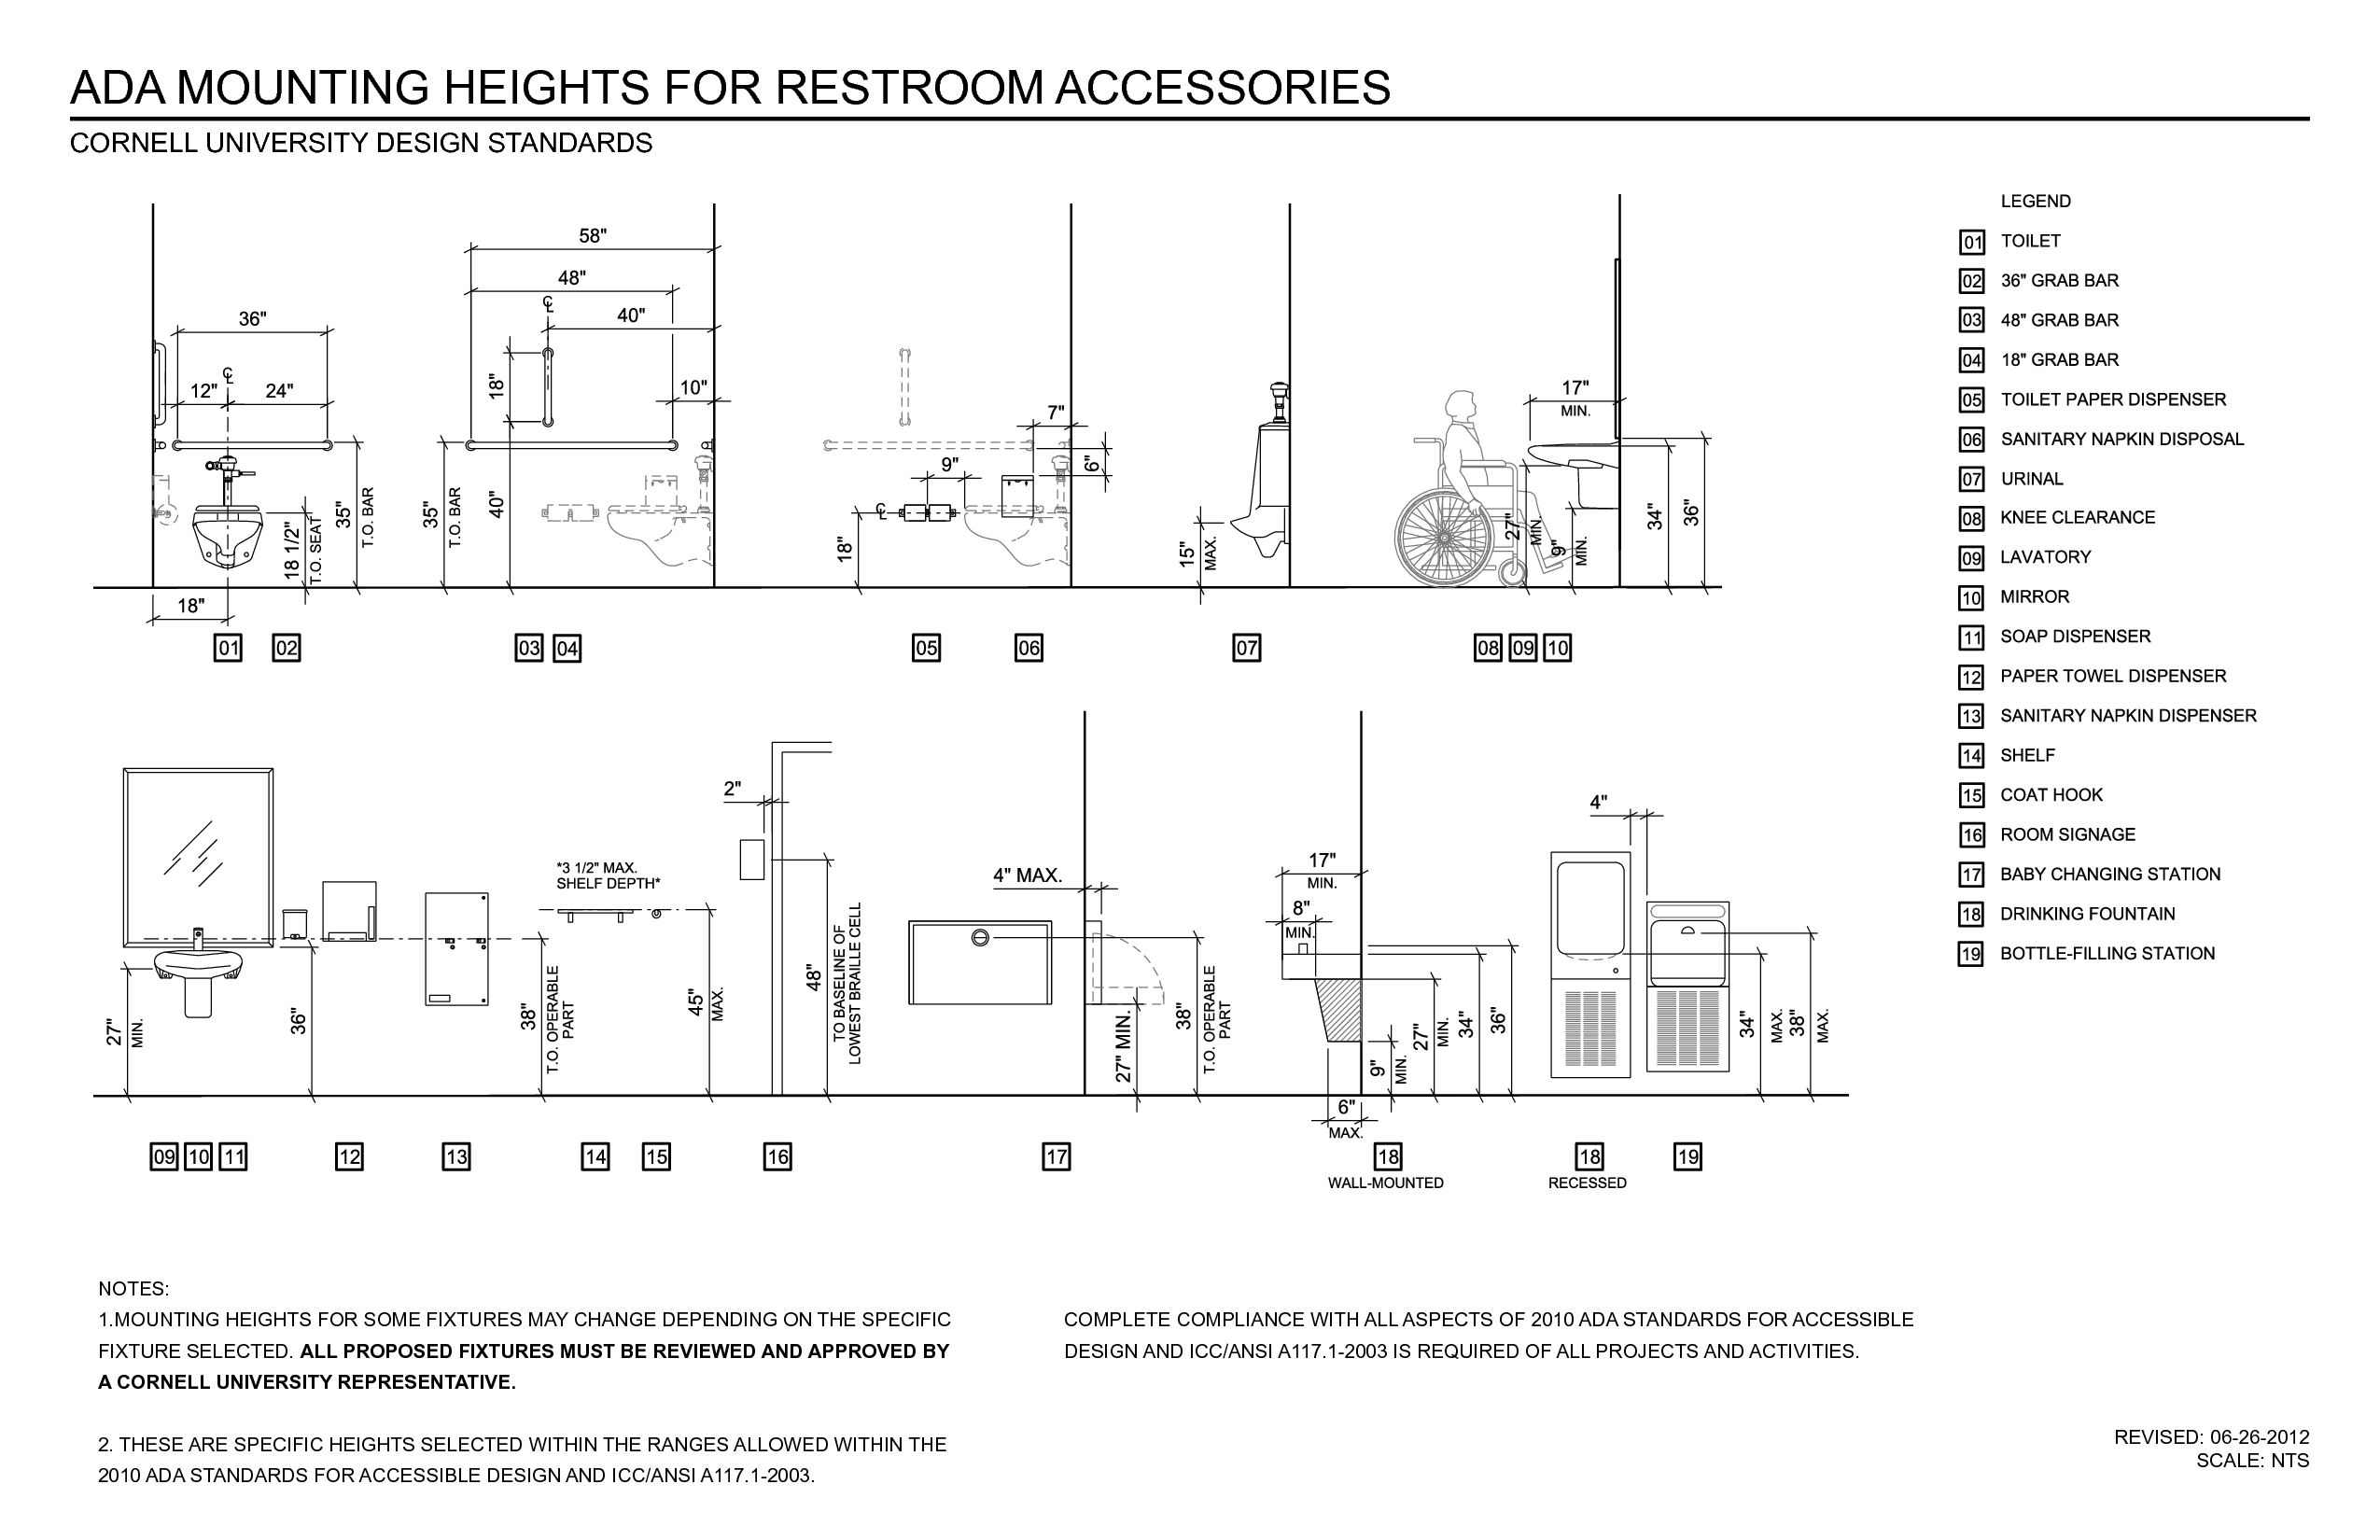 Ada Requirements For Toilet Seat Cover Dispenser Height